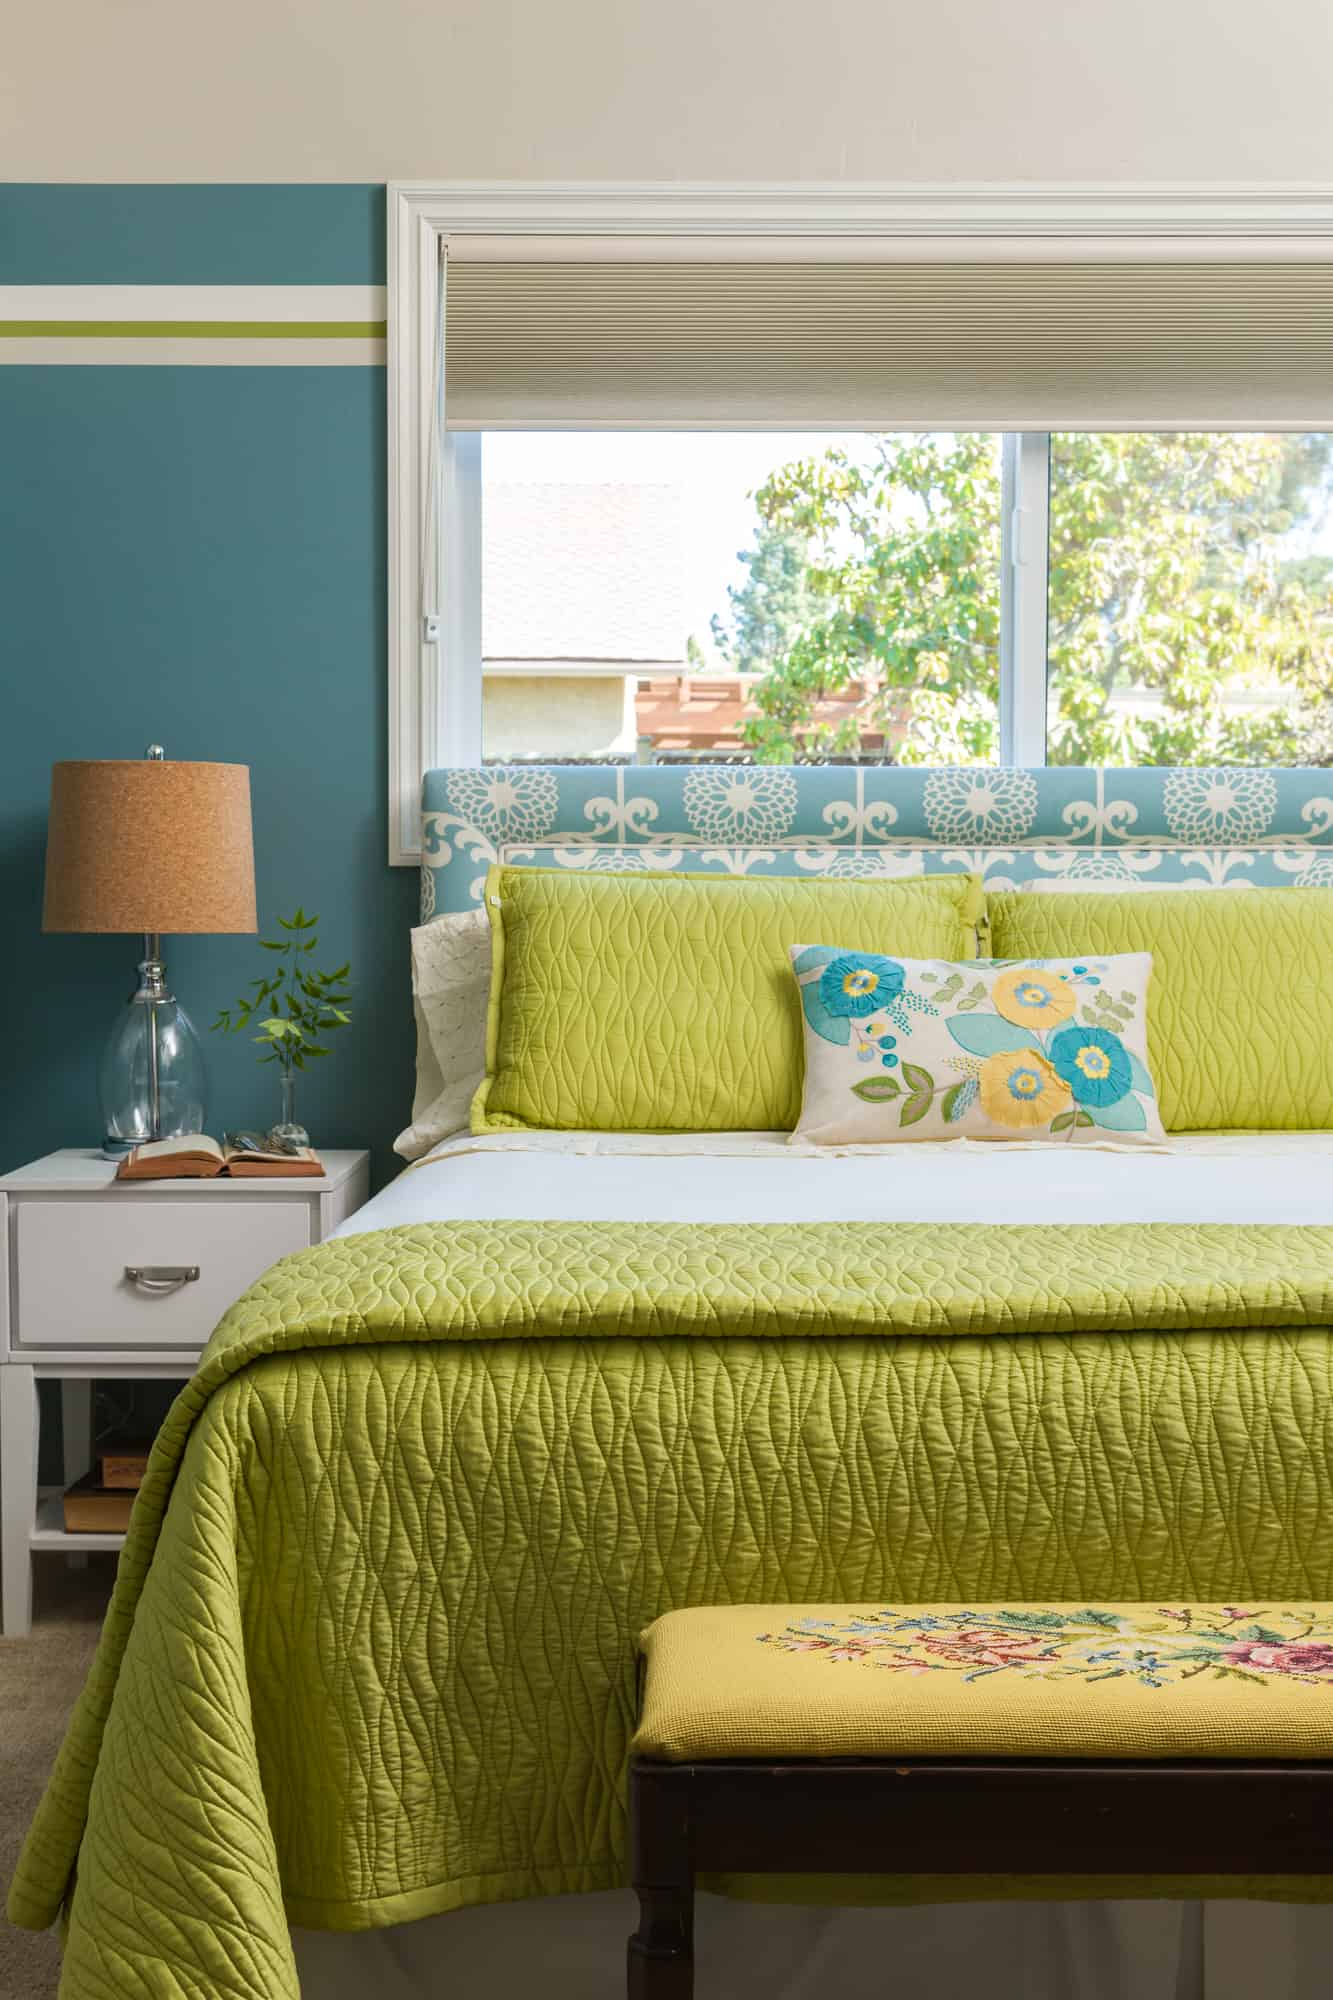 Turquoise teal walls striped with green accents in a guest room ...